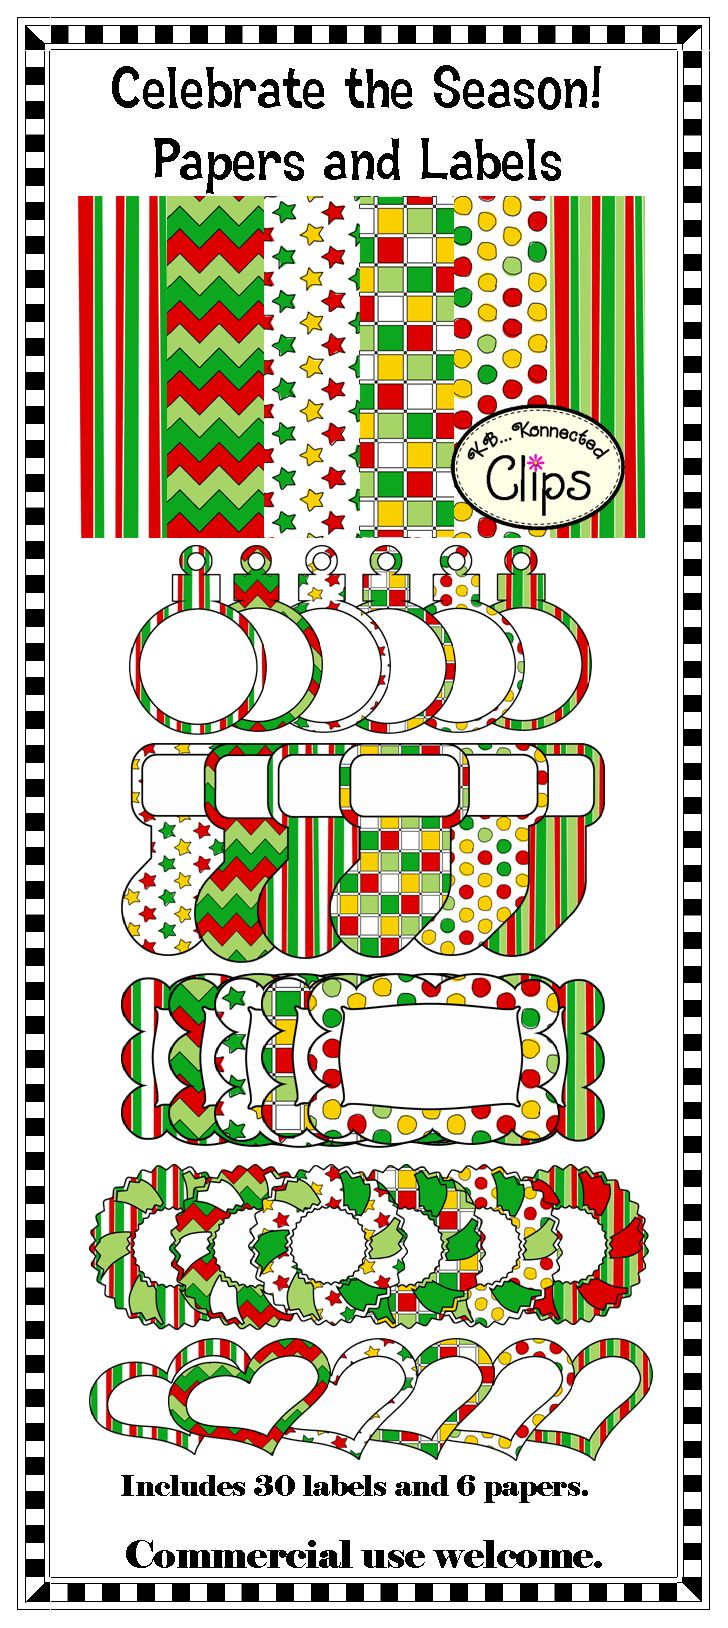 Celebrate the Season (Paper and Coordinating Labels) $  36 png images in all! http://www.teacherspayteachers.com/Product/Clip-Art-Celebrate-the-Season-Papers-and-Labels-Freebie-in-preview-977449: Labels Freebies, Art Teachers, Seasons Clips, Christmas Crafts, Fonts Clips Art, Seasons Paper, Celebrities, Tpt Clipart, Products Clipart